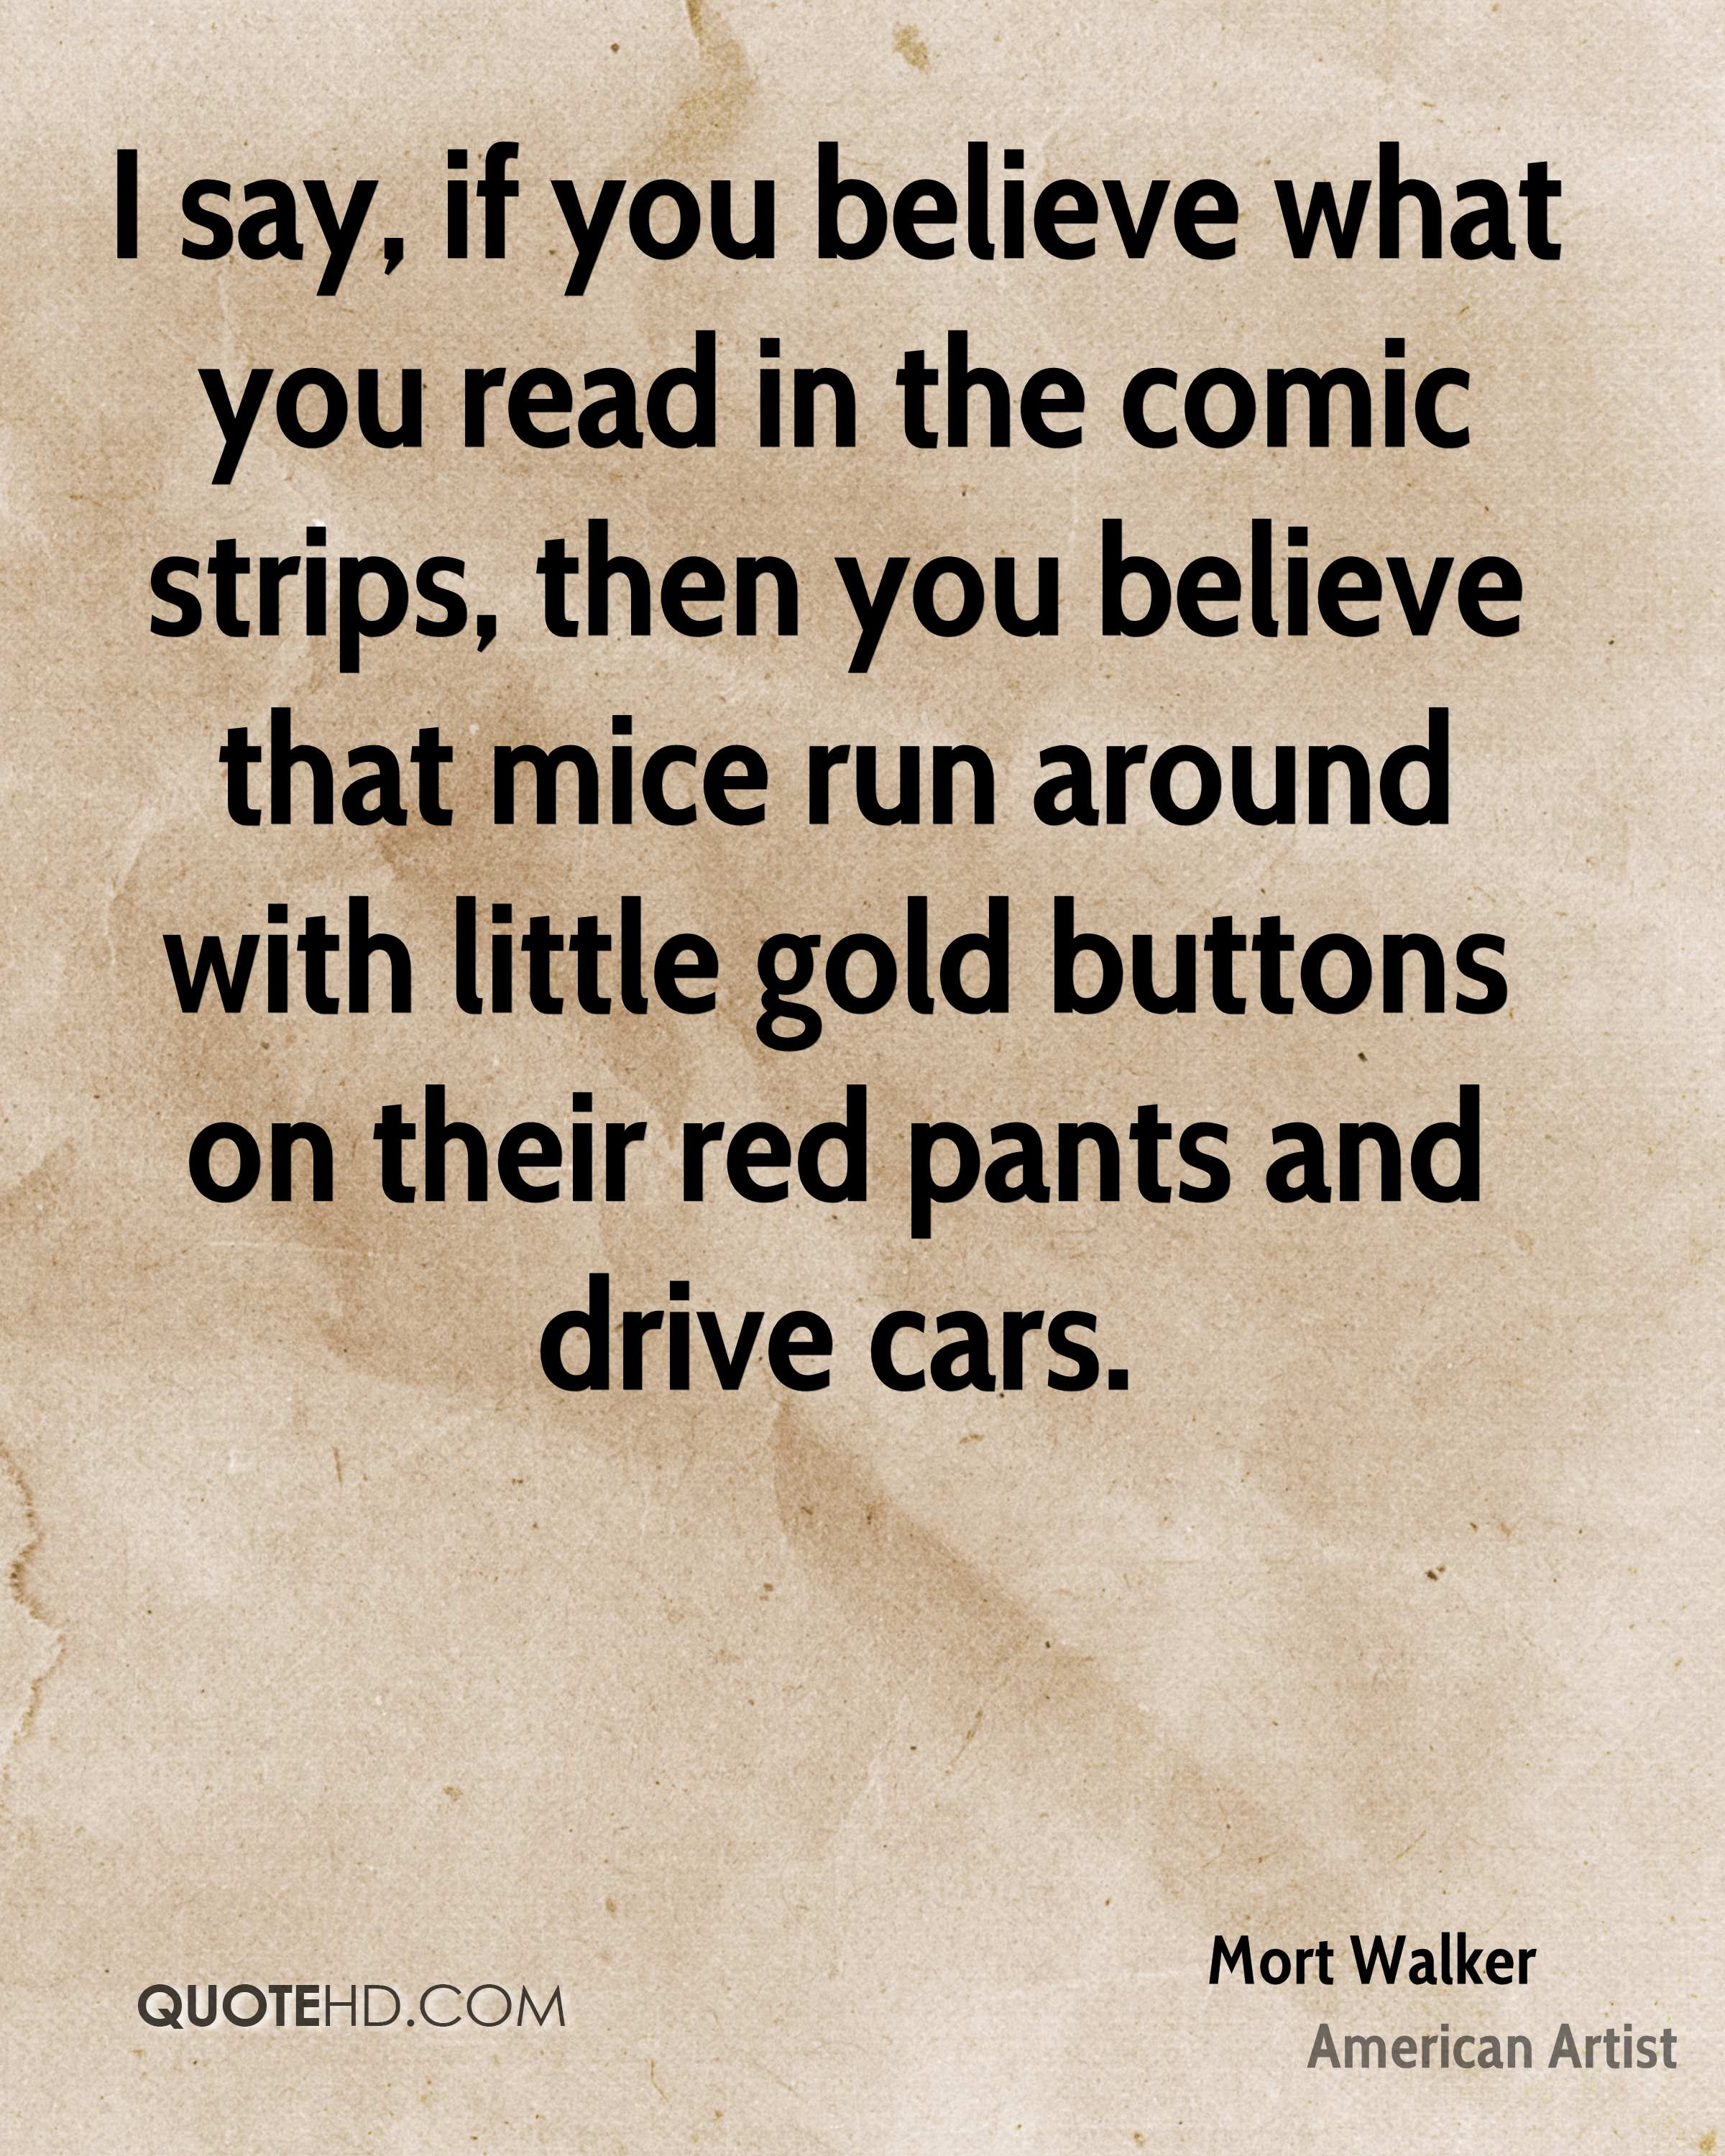 I say, if you believe what you read in the comic strips, then you believe that mice run around with little gold buttons on their red pants and drive cars.